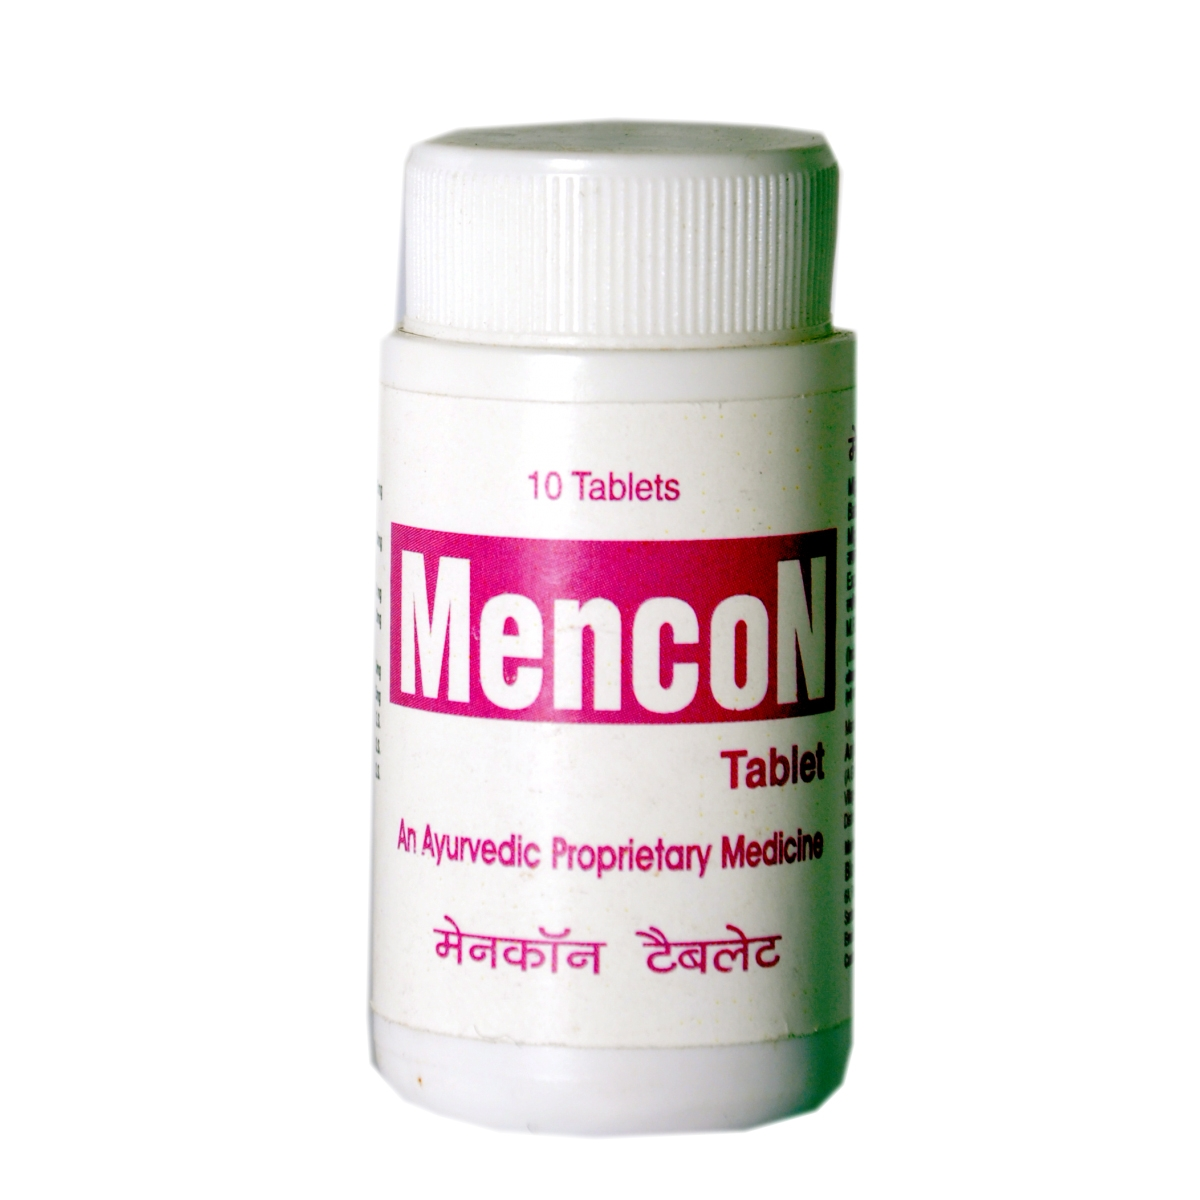 Mencon Tablet In Port Blair